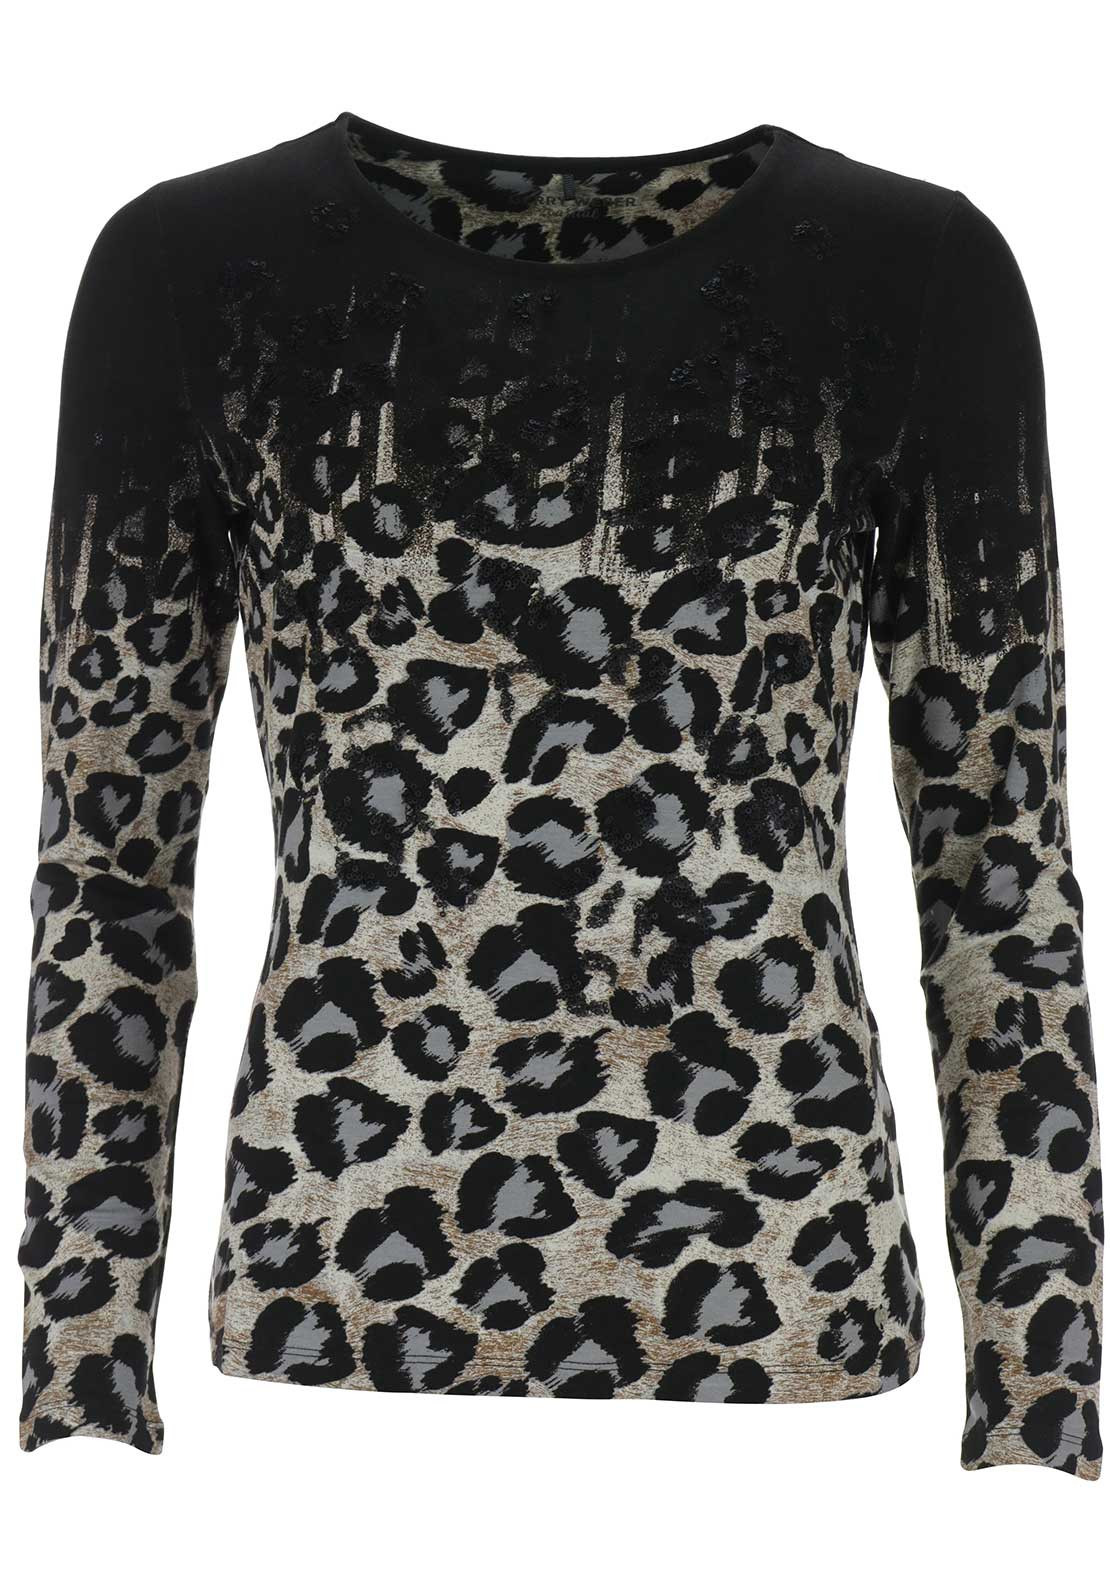 Gerry Weber Embellished Printed Top, Black Multi